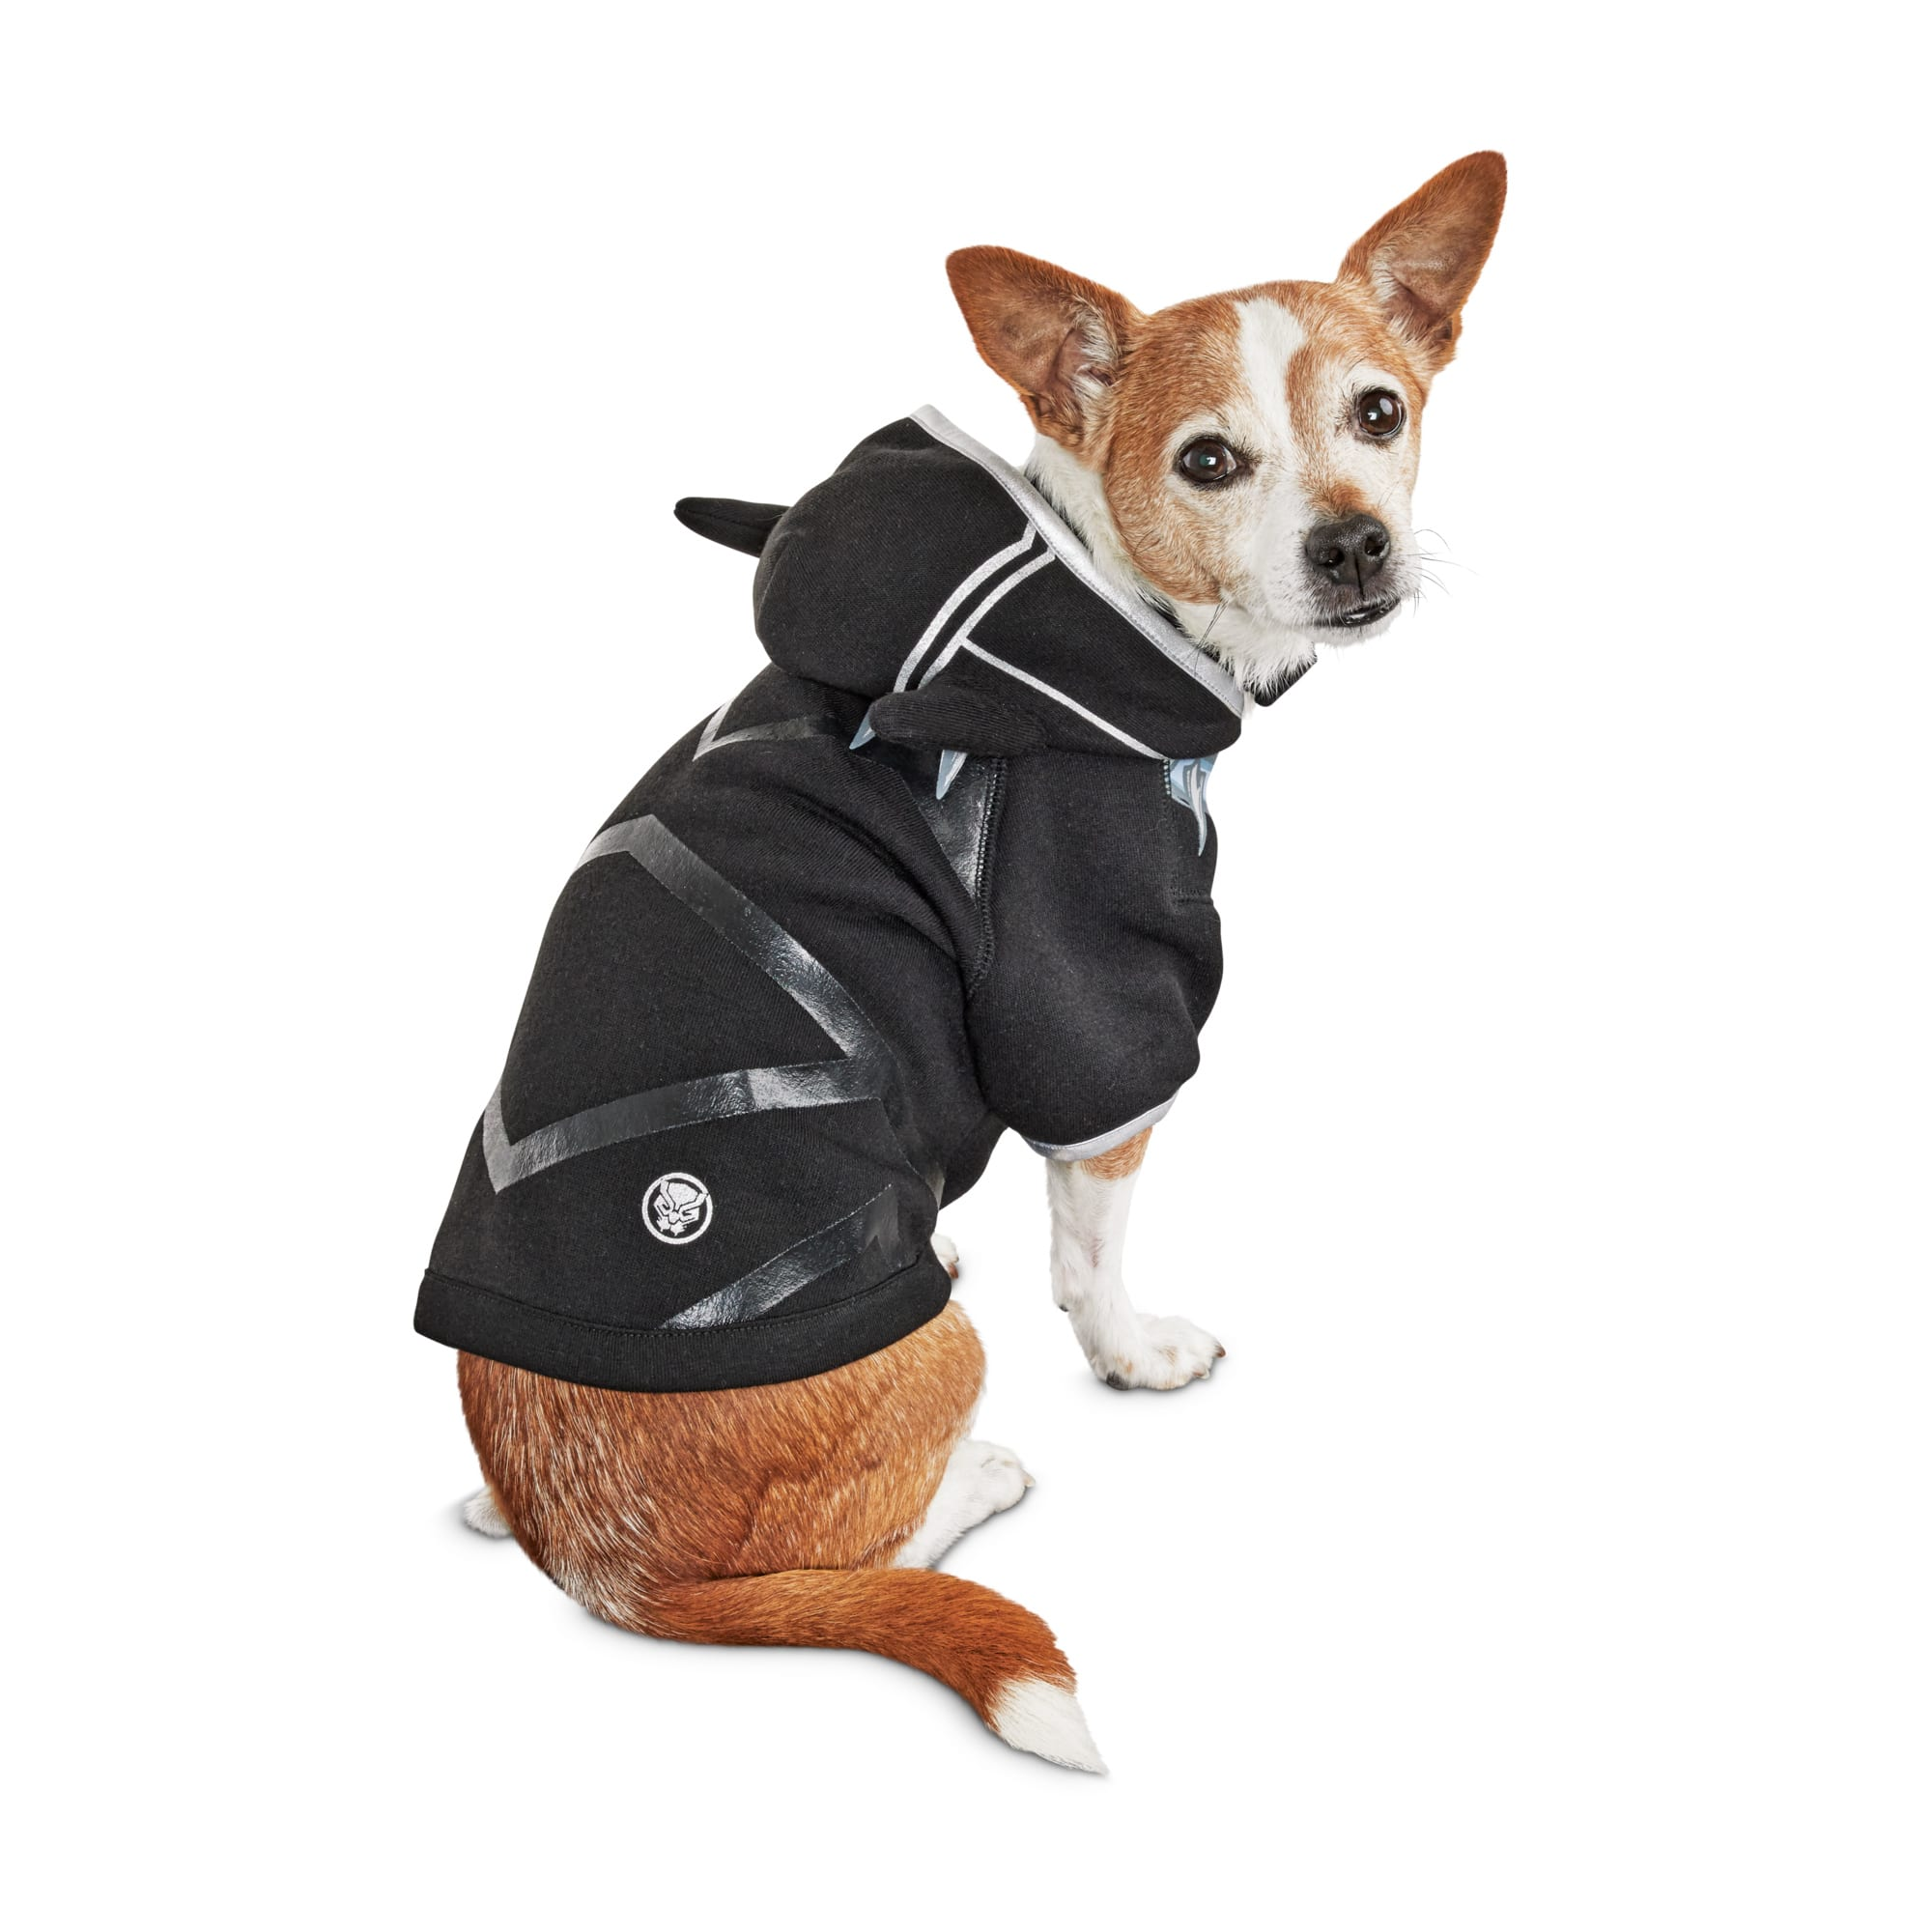 Marvel Avengers Black Panther Dog Hoodie X Small Petco Just choose your favourite hero costume. marvel avengers black panther dog hoodie x small